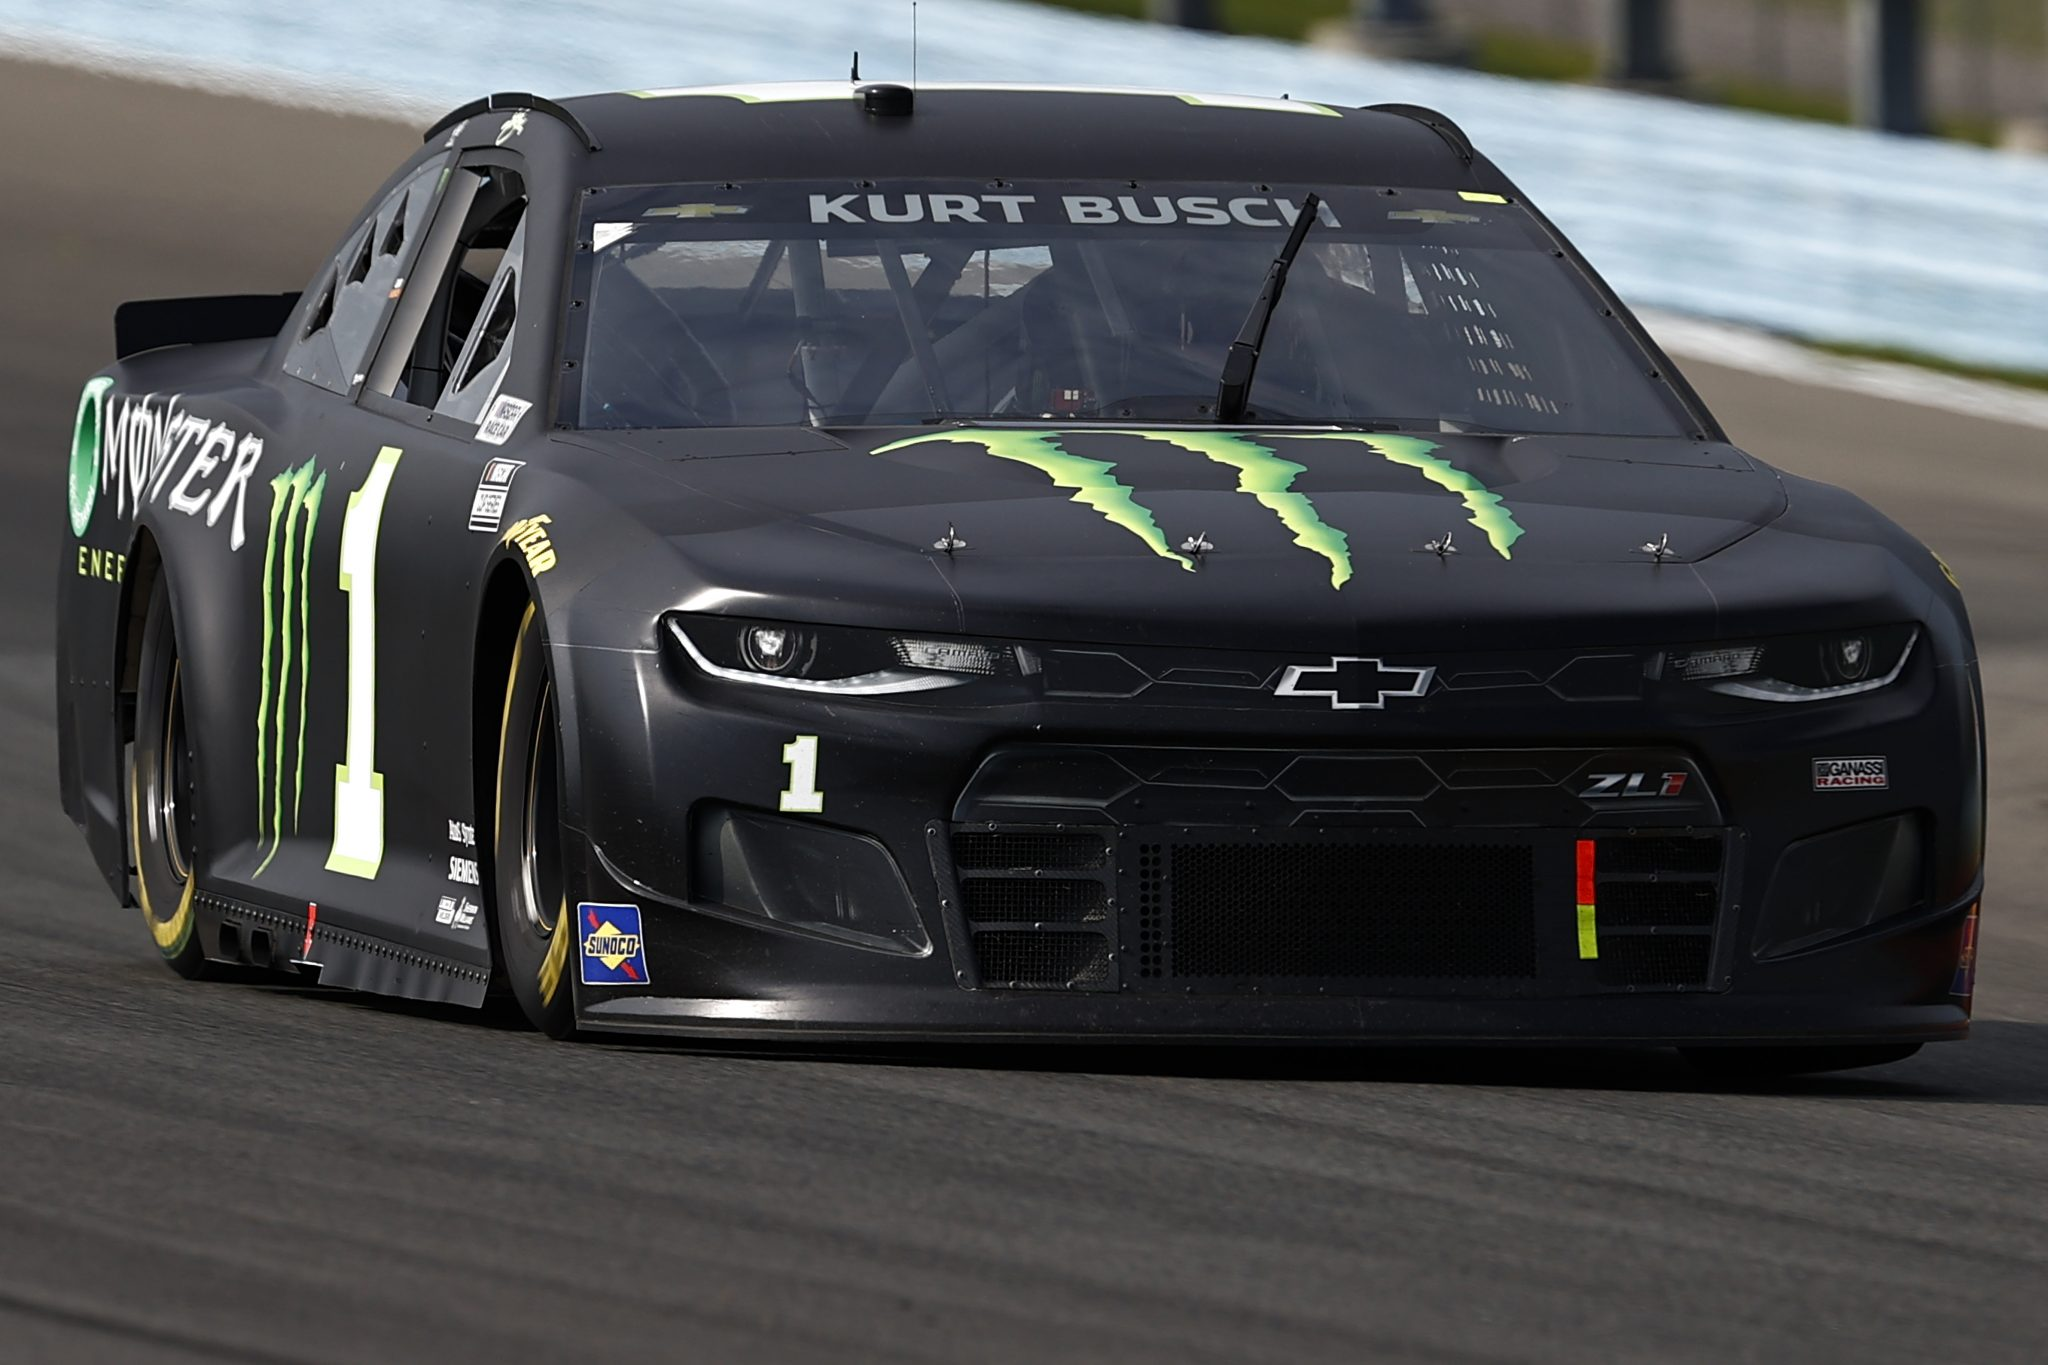 WATKINS GLEN, NEW YORK - AUGUST 08: Kurt Busch, driver of the #1 Monster Energy Chevrolet, drives during the NASCAR Cup Series Go Bowling at The Glen at Watkins Glen International on August 08, 2021 in Watkins Glen, New York. (Photo by Jared C. Tilton/Getty Images) | Getty Images